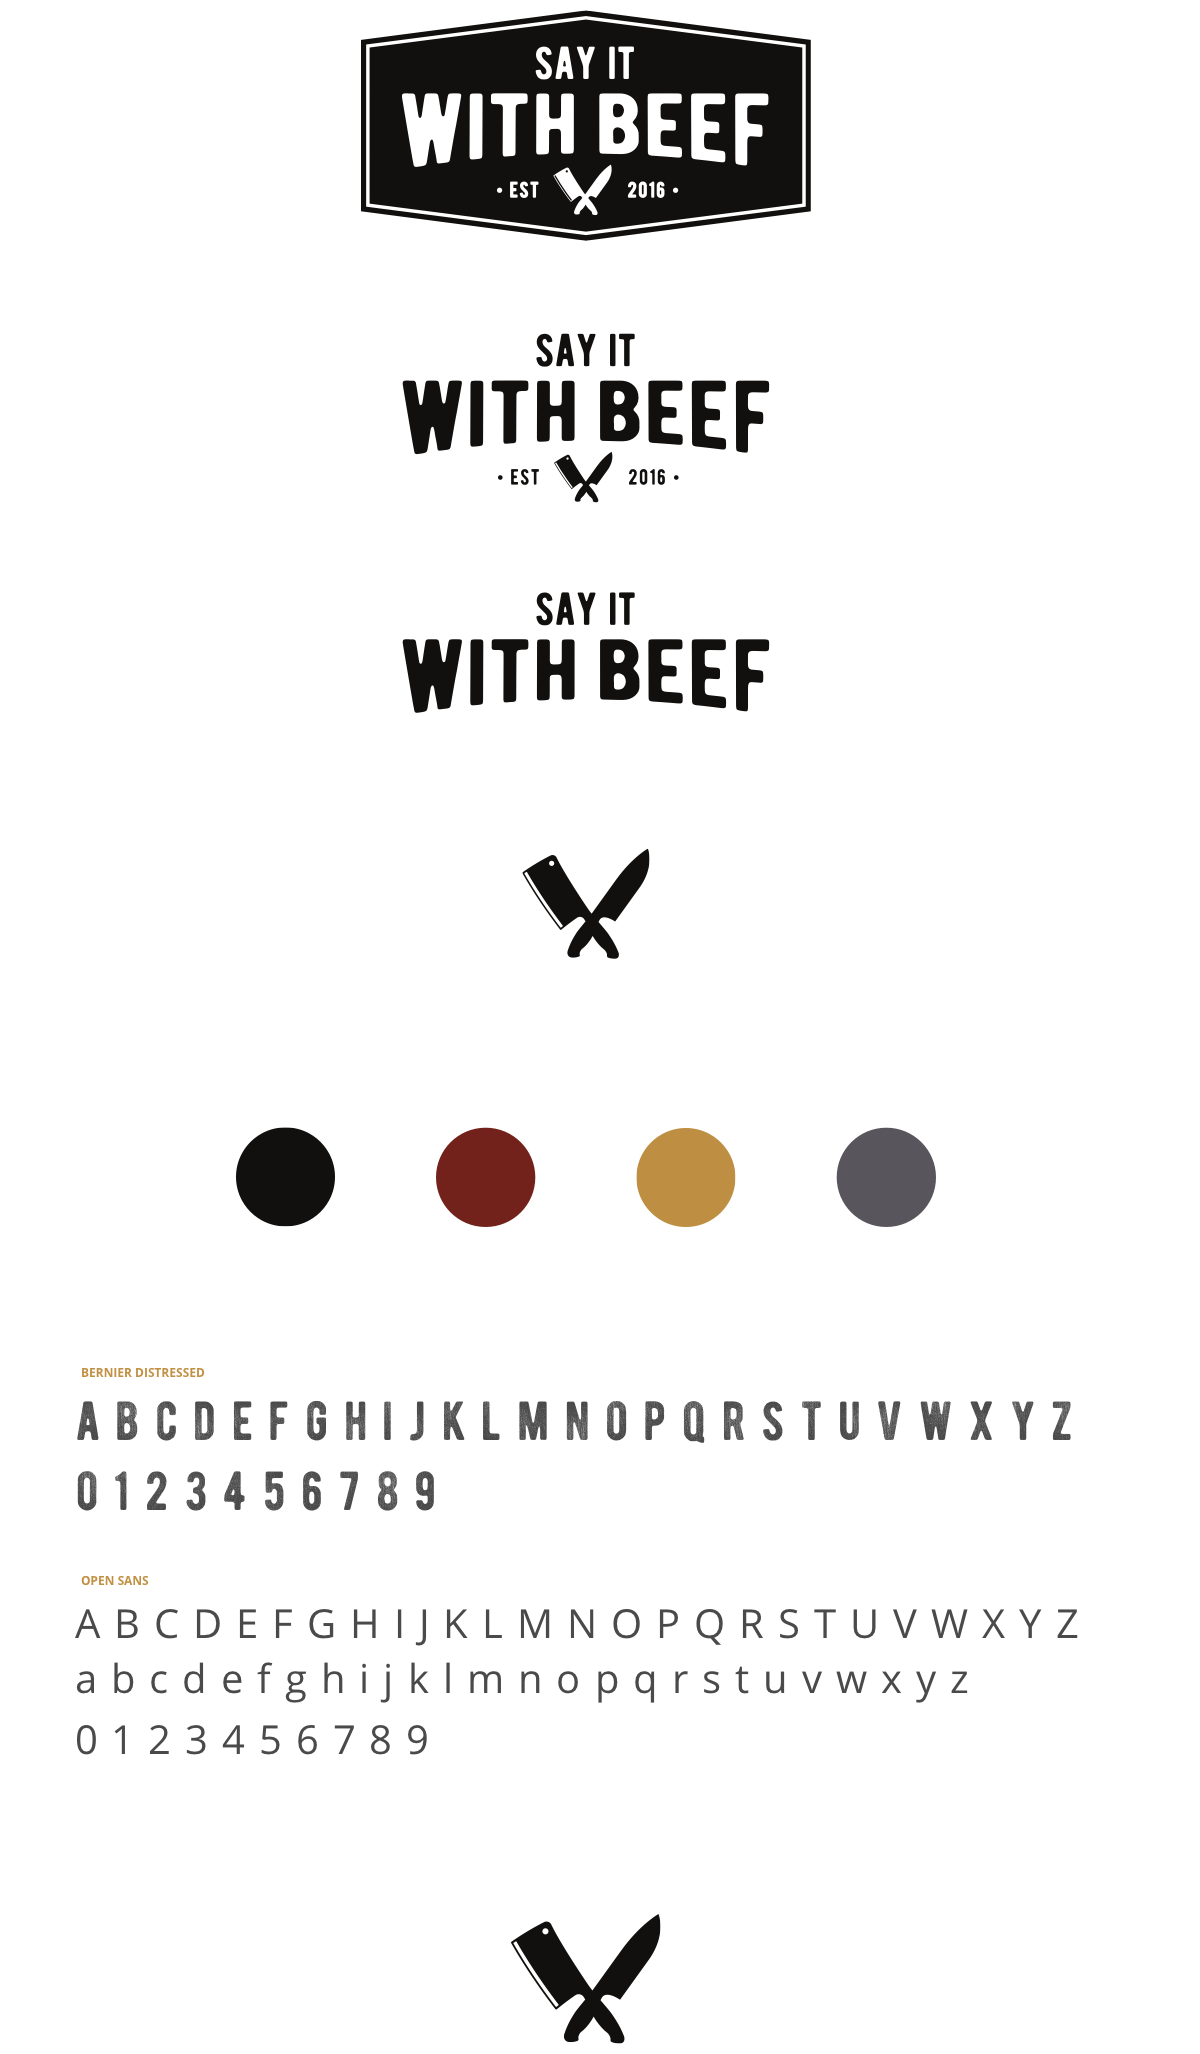 say it with beef logos and branding elements